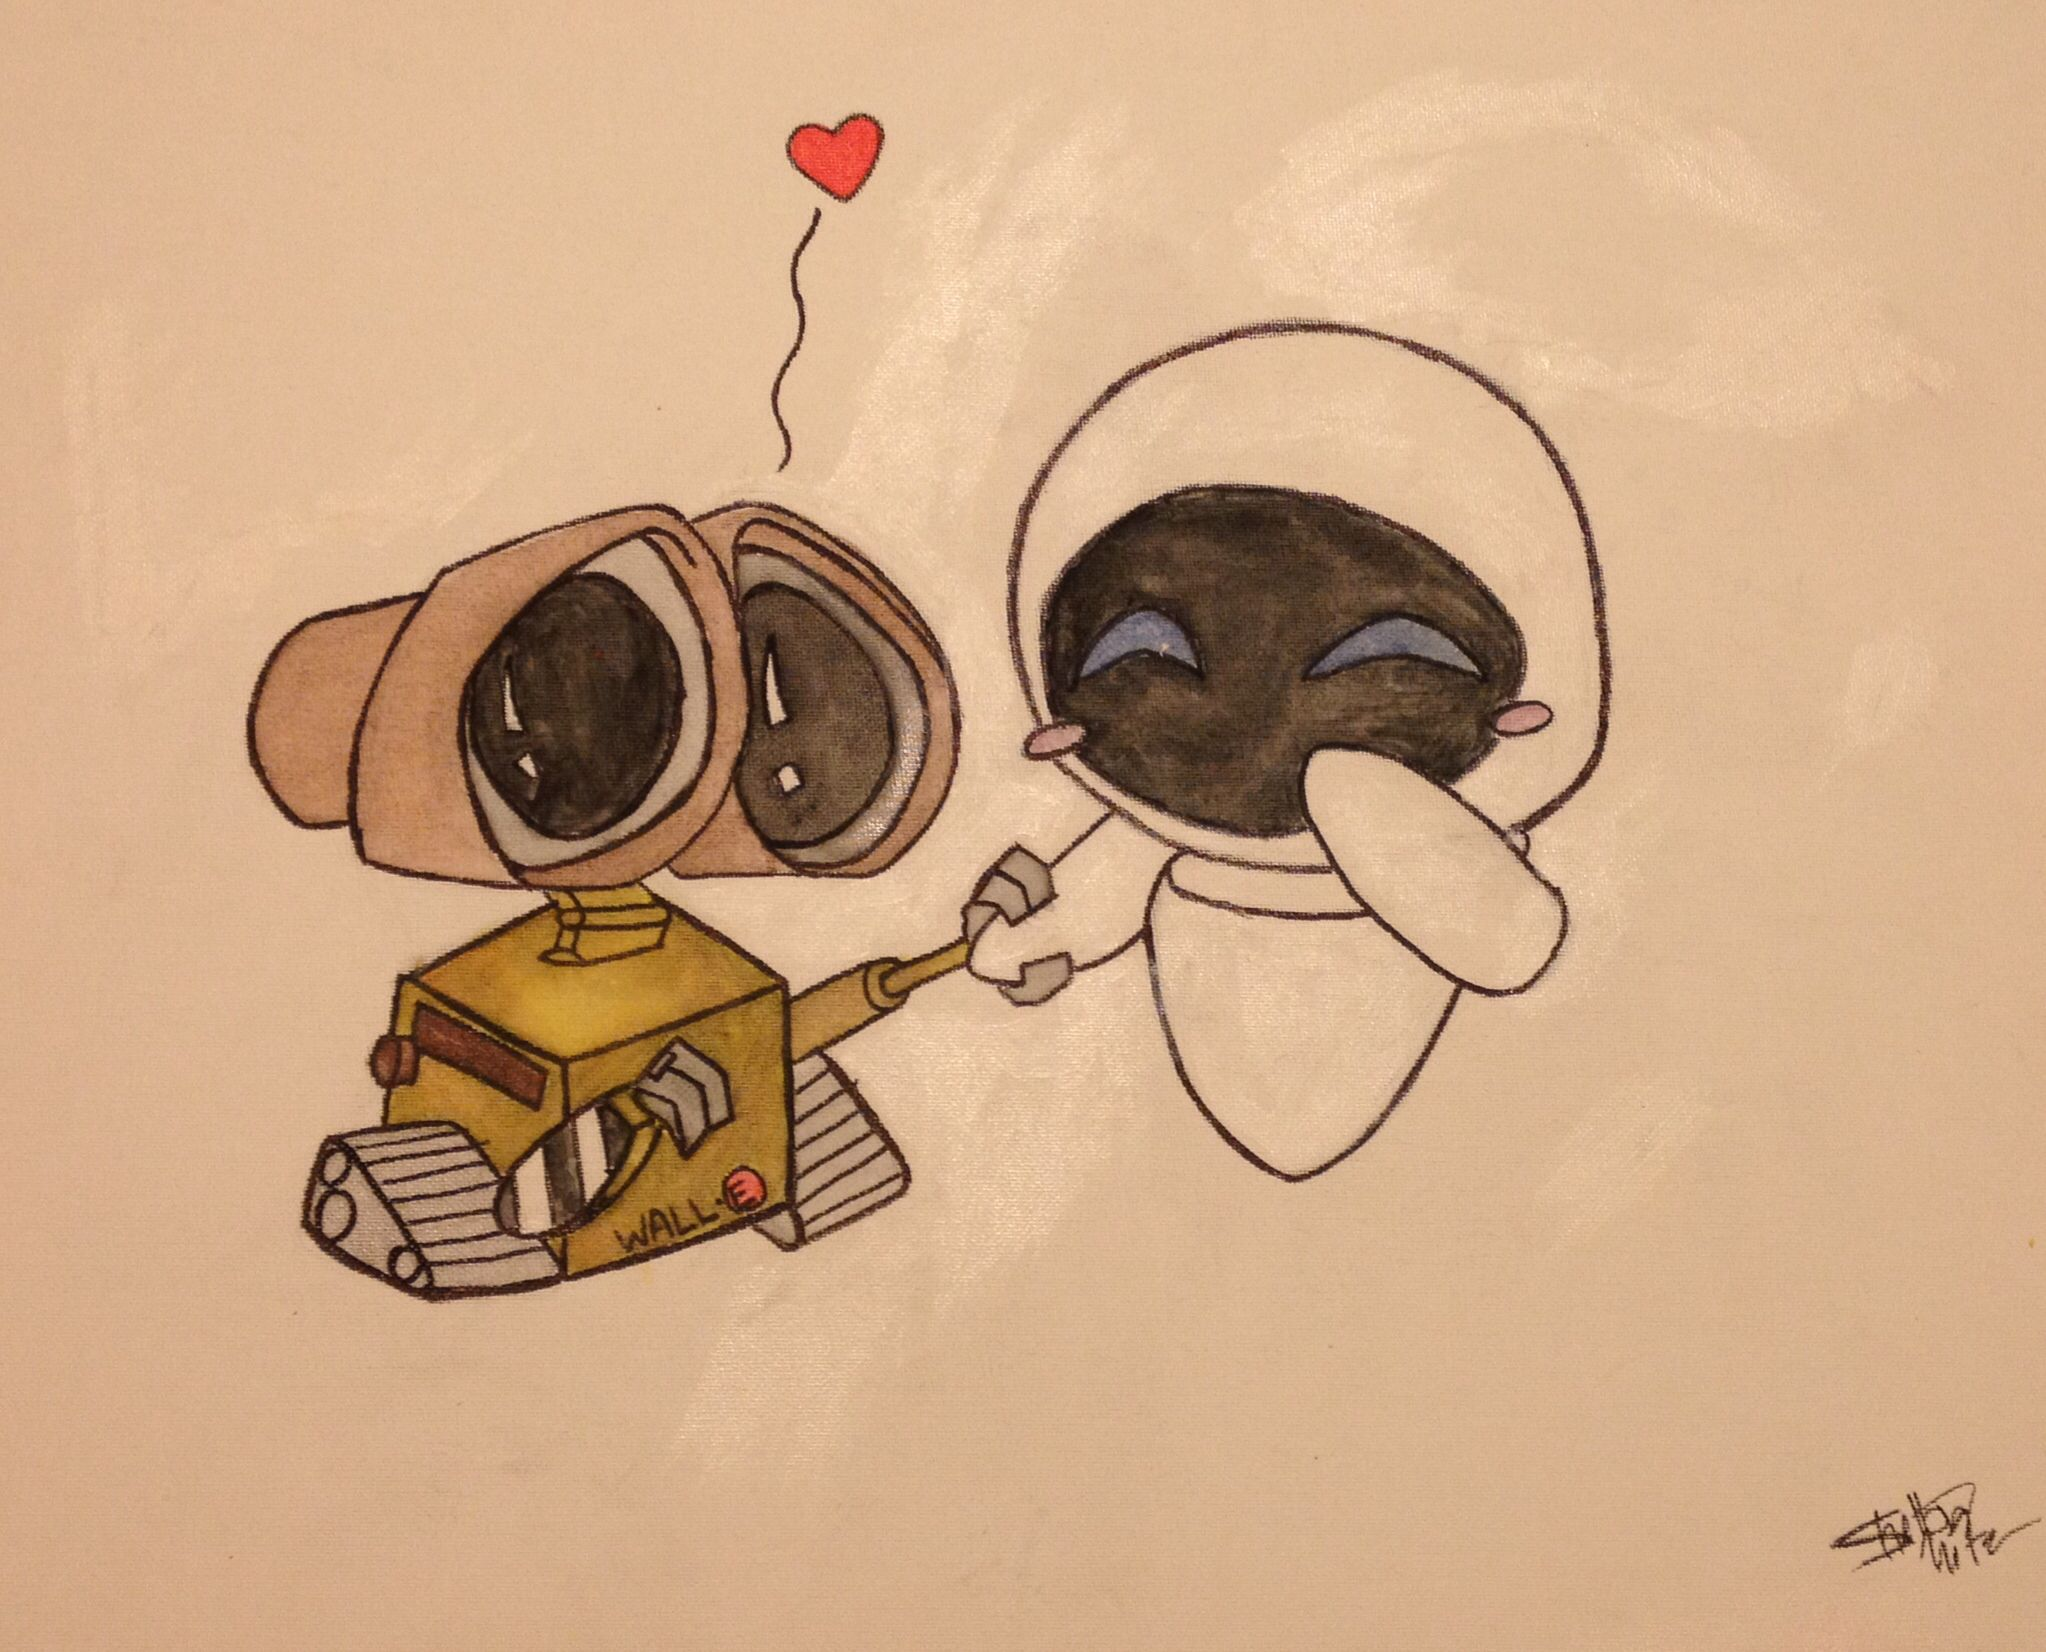 WALL•E and EVE | Painted: 7/10/14